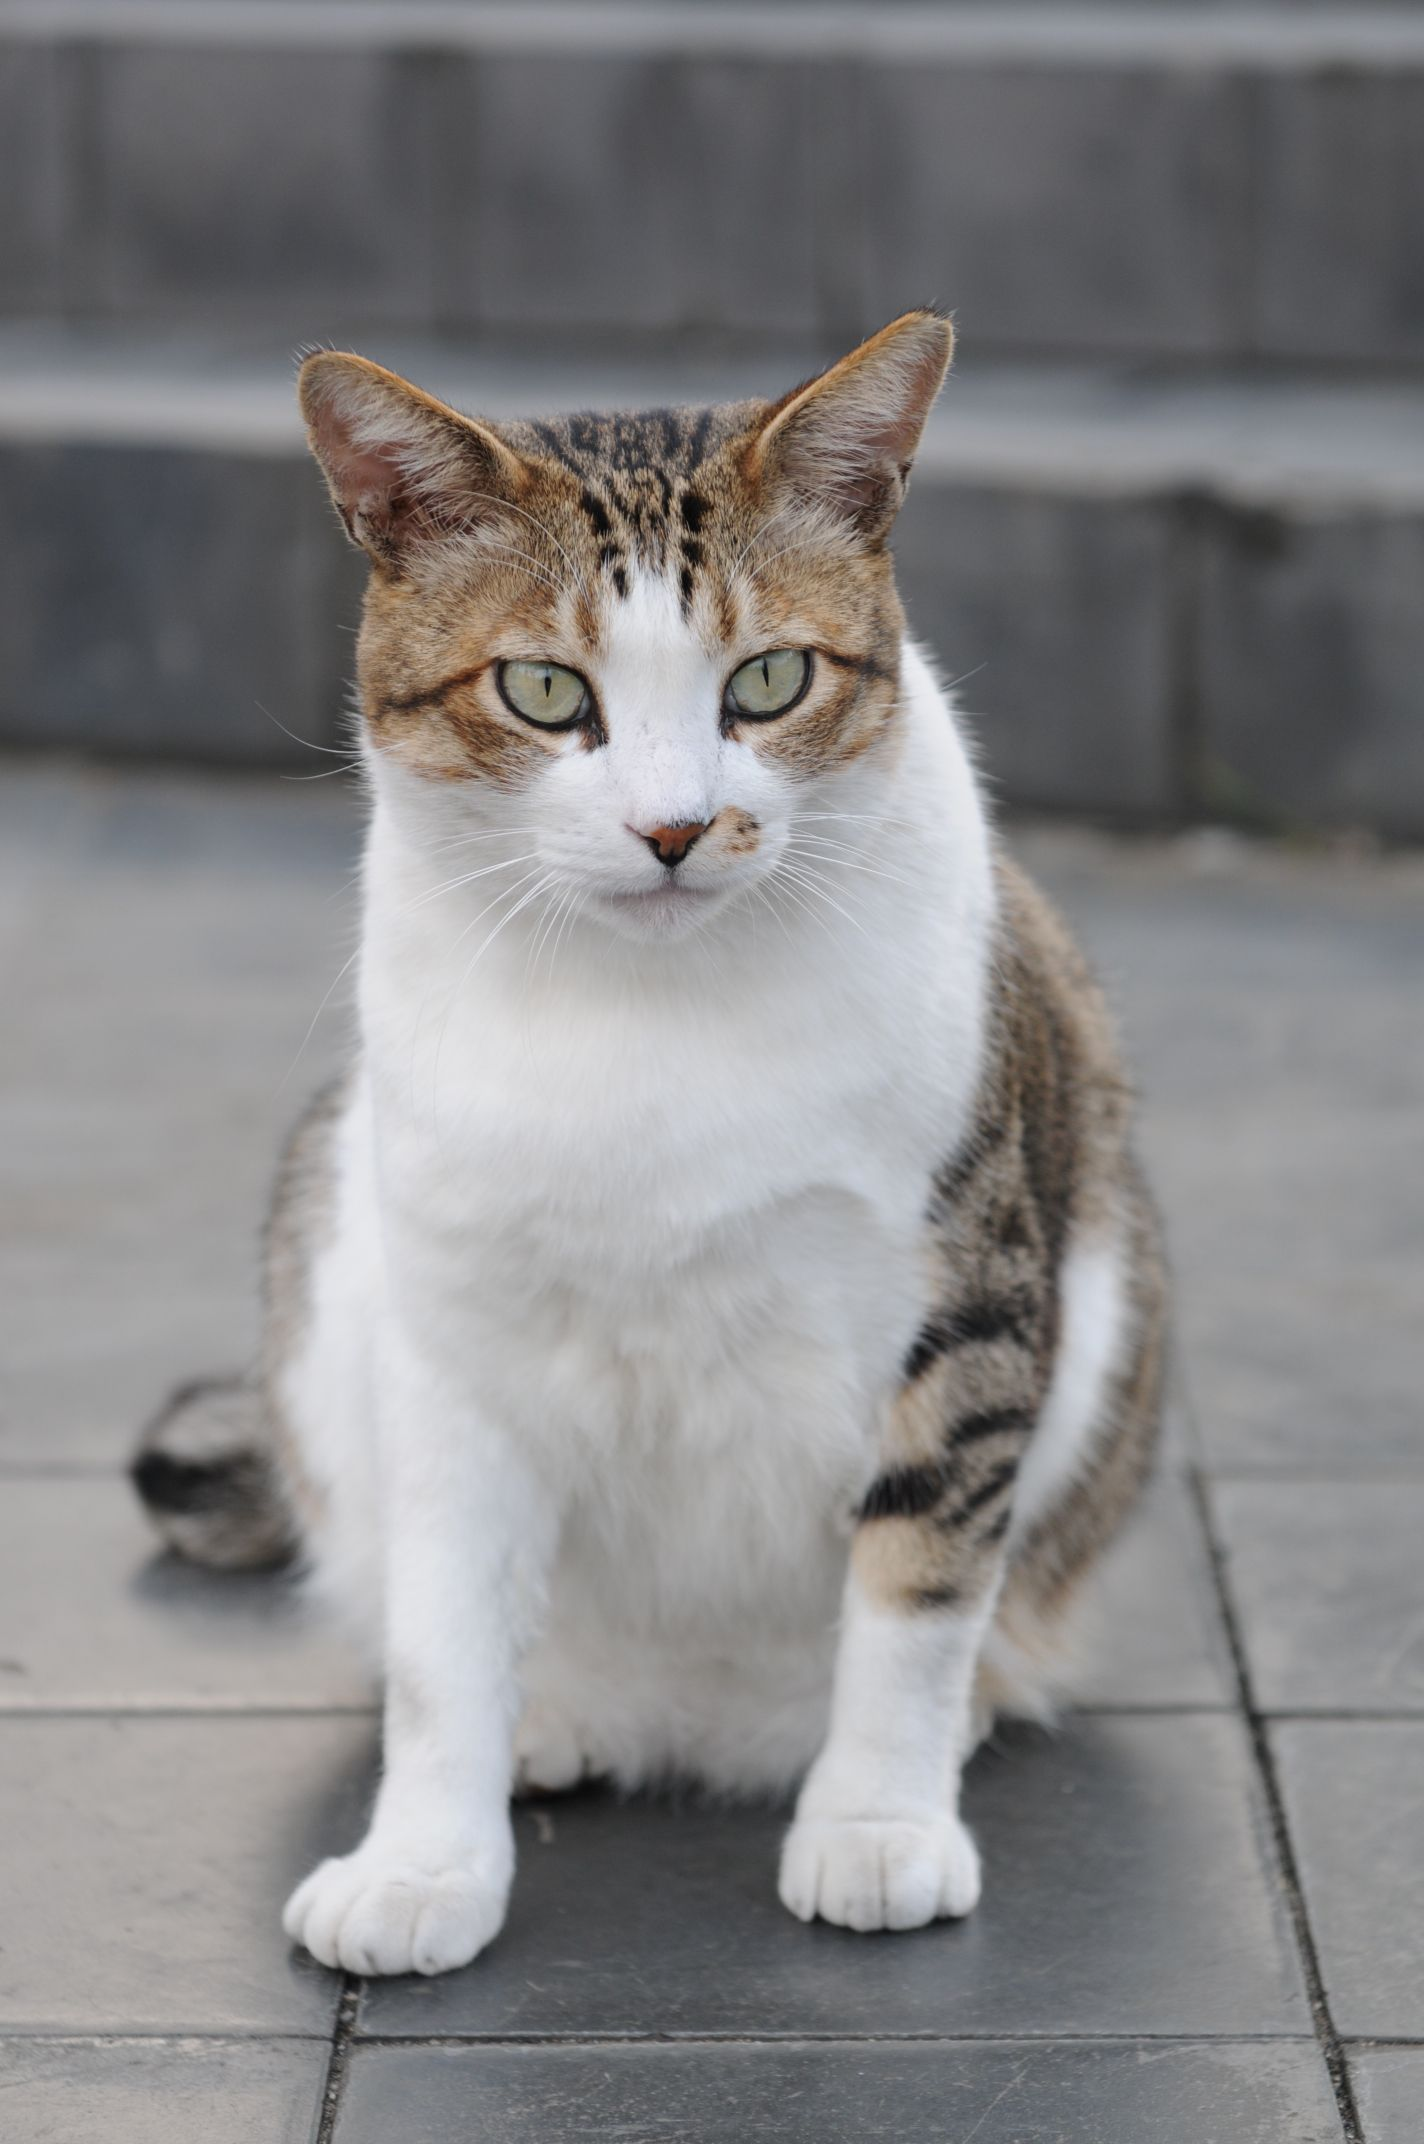 Brown And White Tabby Cat With Blue Eyes I Just Love These Cute